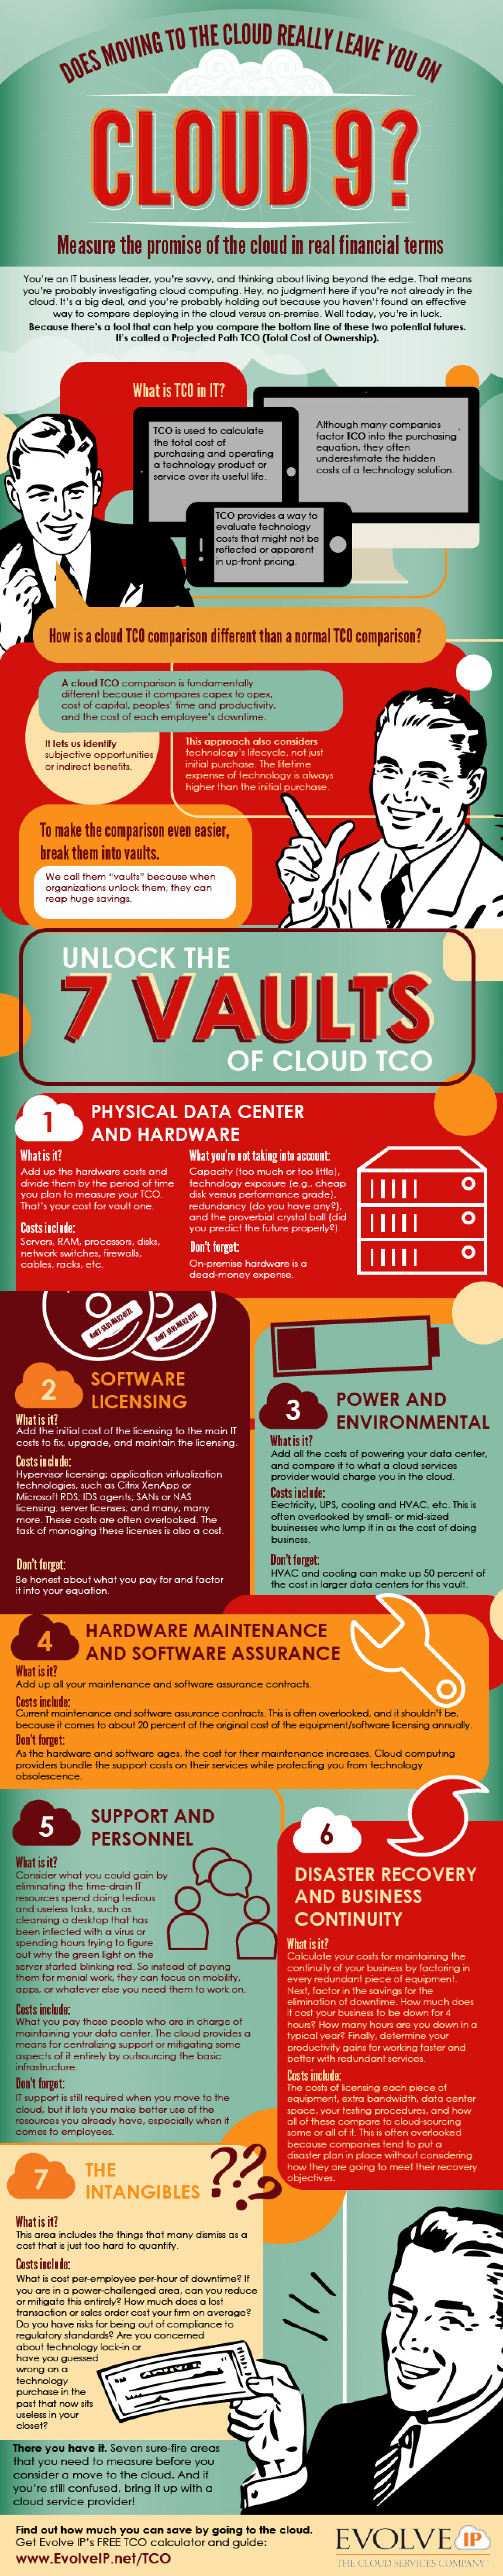 Does Moving to the Cloud Really Leave you on Cloud 9 Infographic